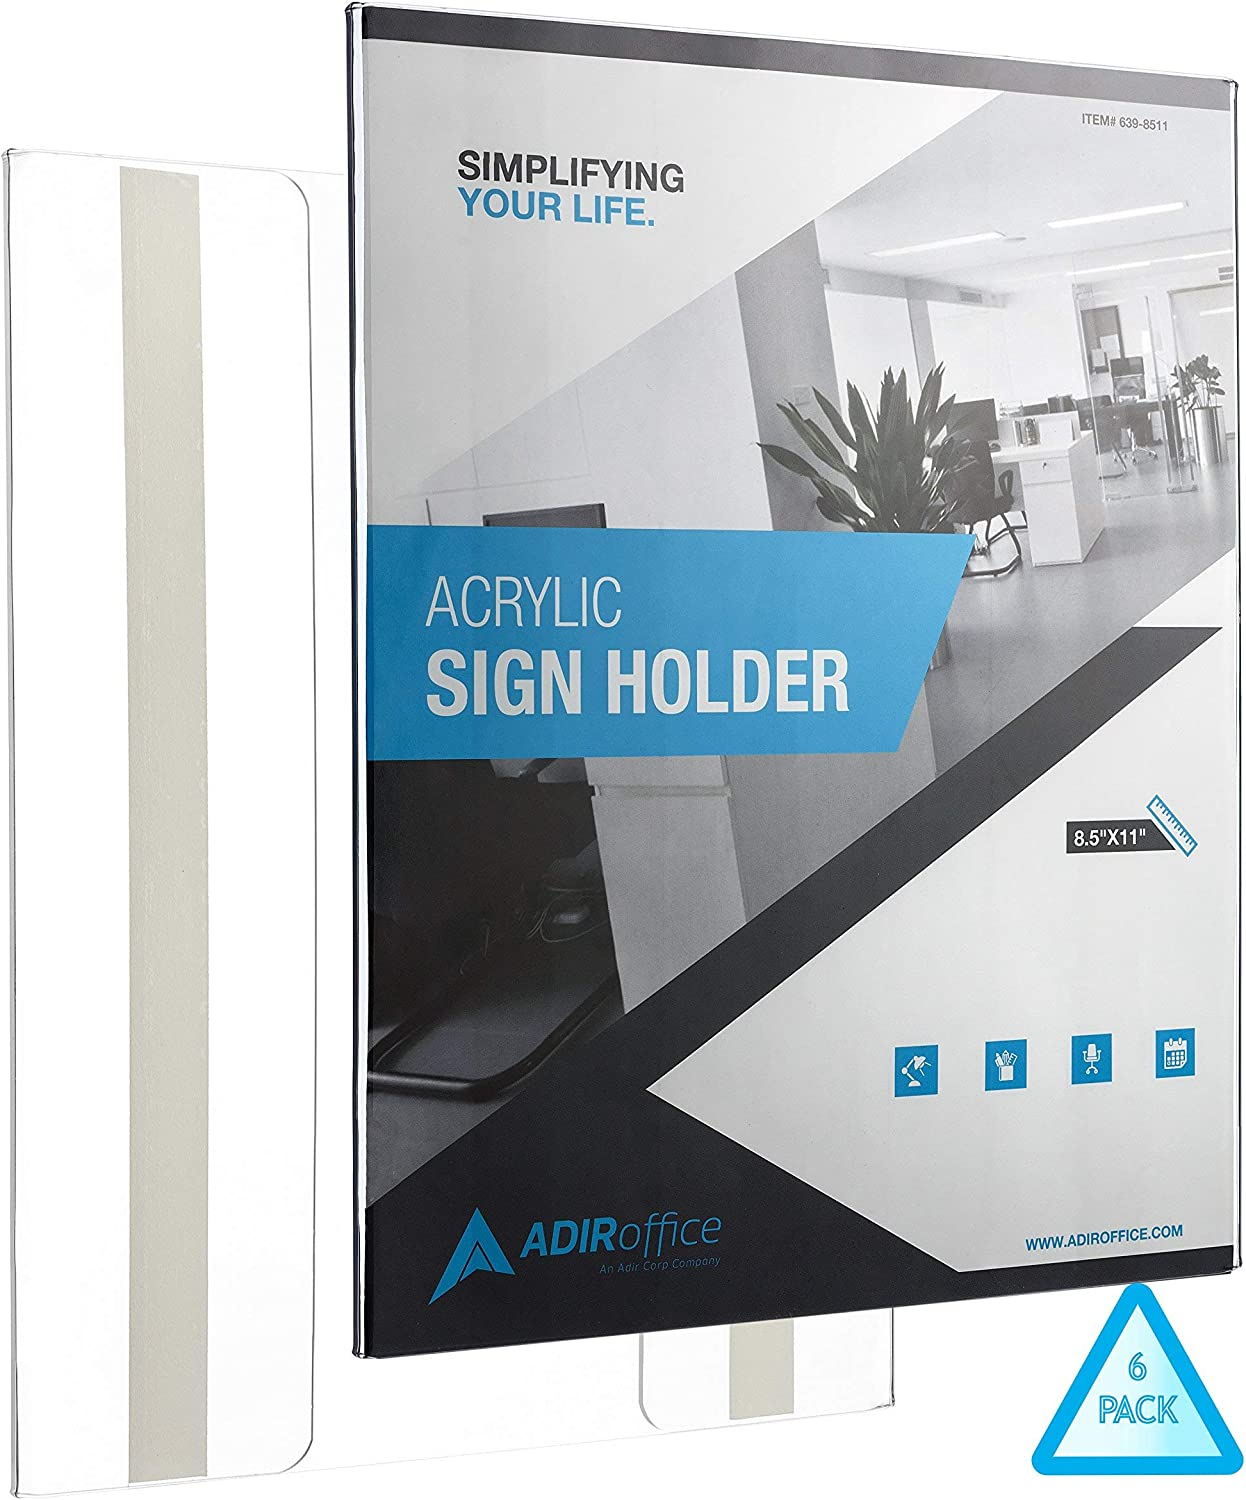 Amazon Com Adiroffice Sign Holder With Mount Adhesive For Easy Installation Portrait Style Ad Frame Side Insert With Clear Acrylic Great For Office Restaurant Business And Store 8 5 X 11 Inches 6